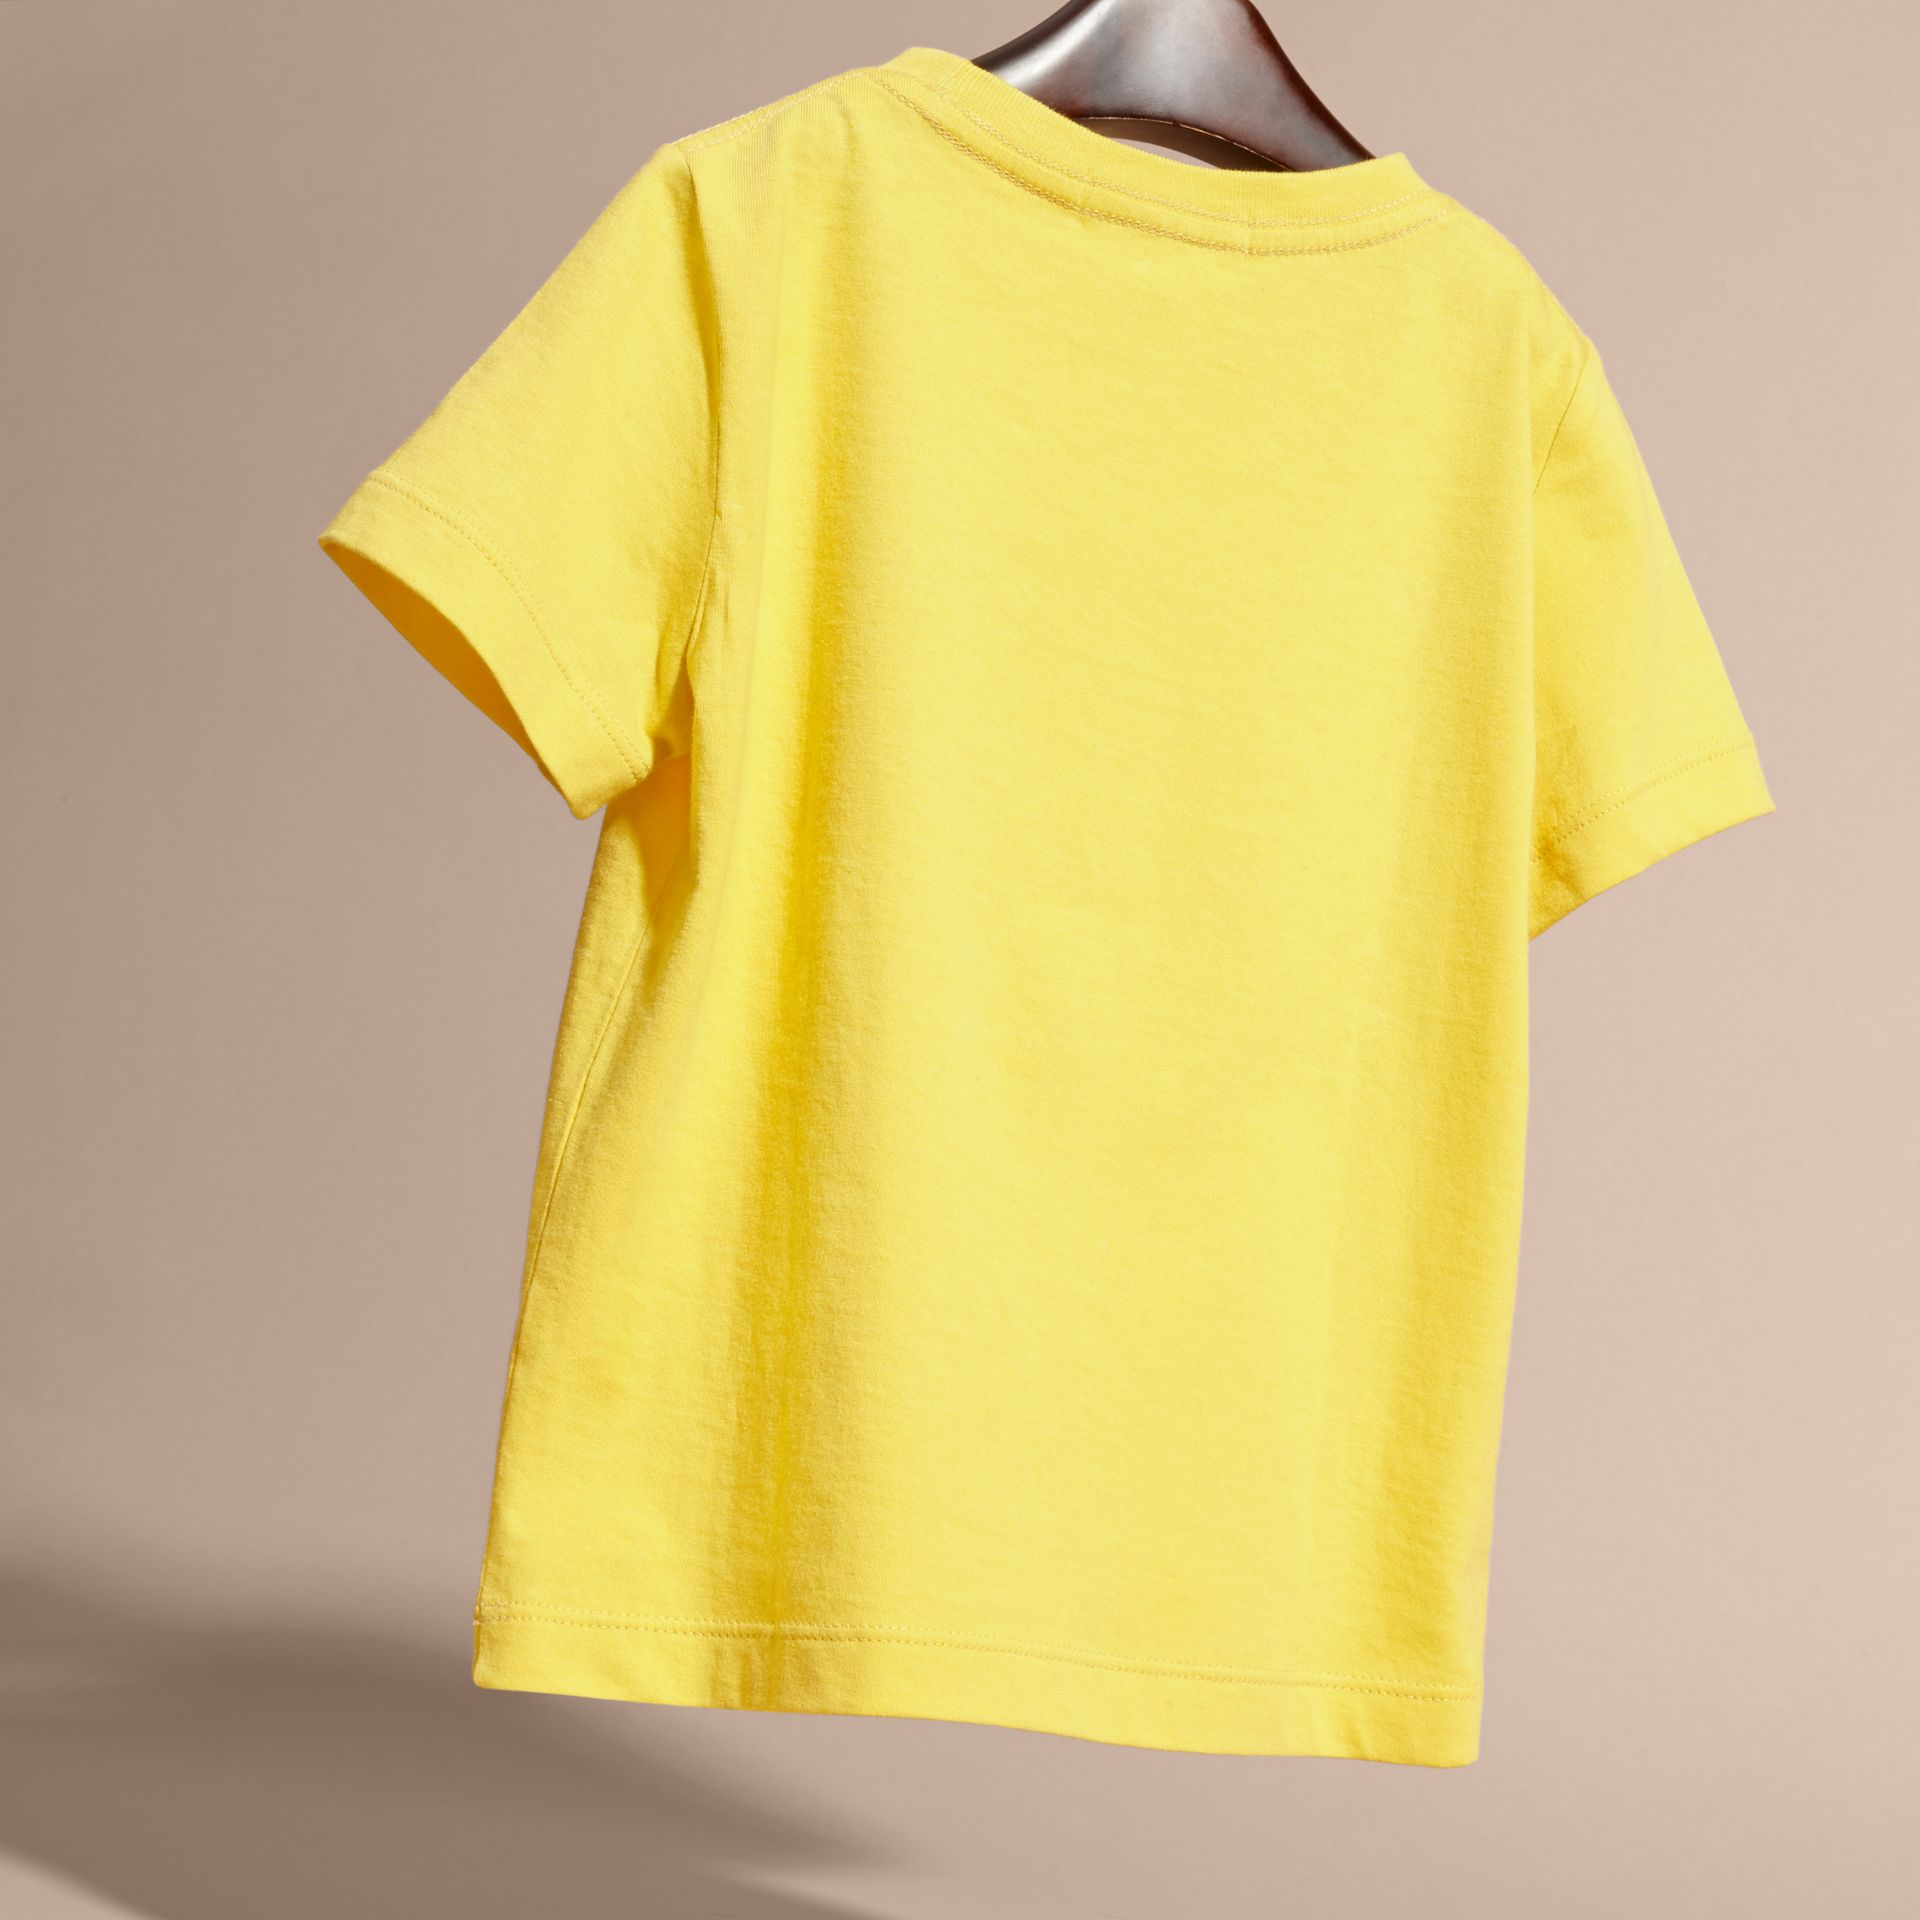 Bright yellow Check Pocket T-Shirt Bright Yellow - gallery image 4